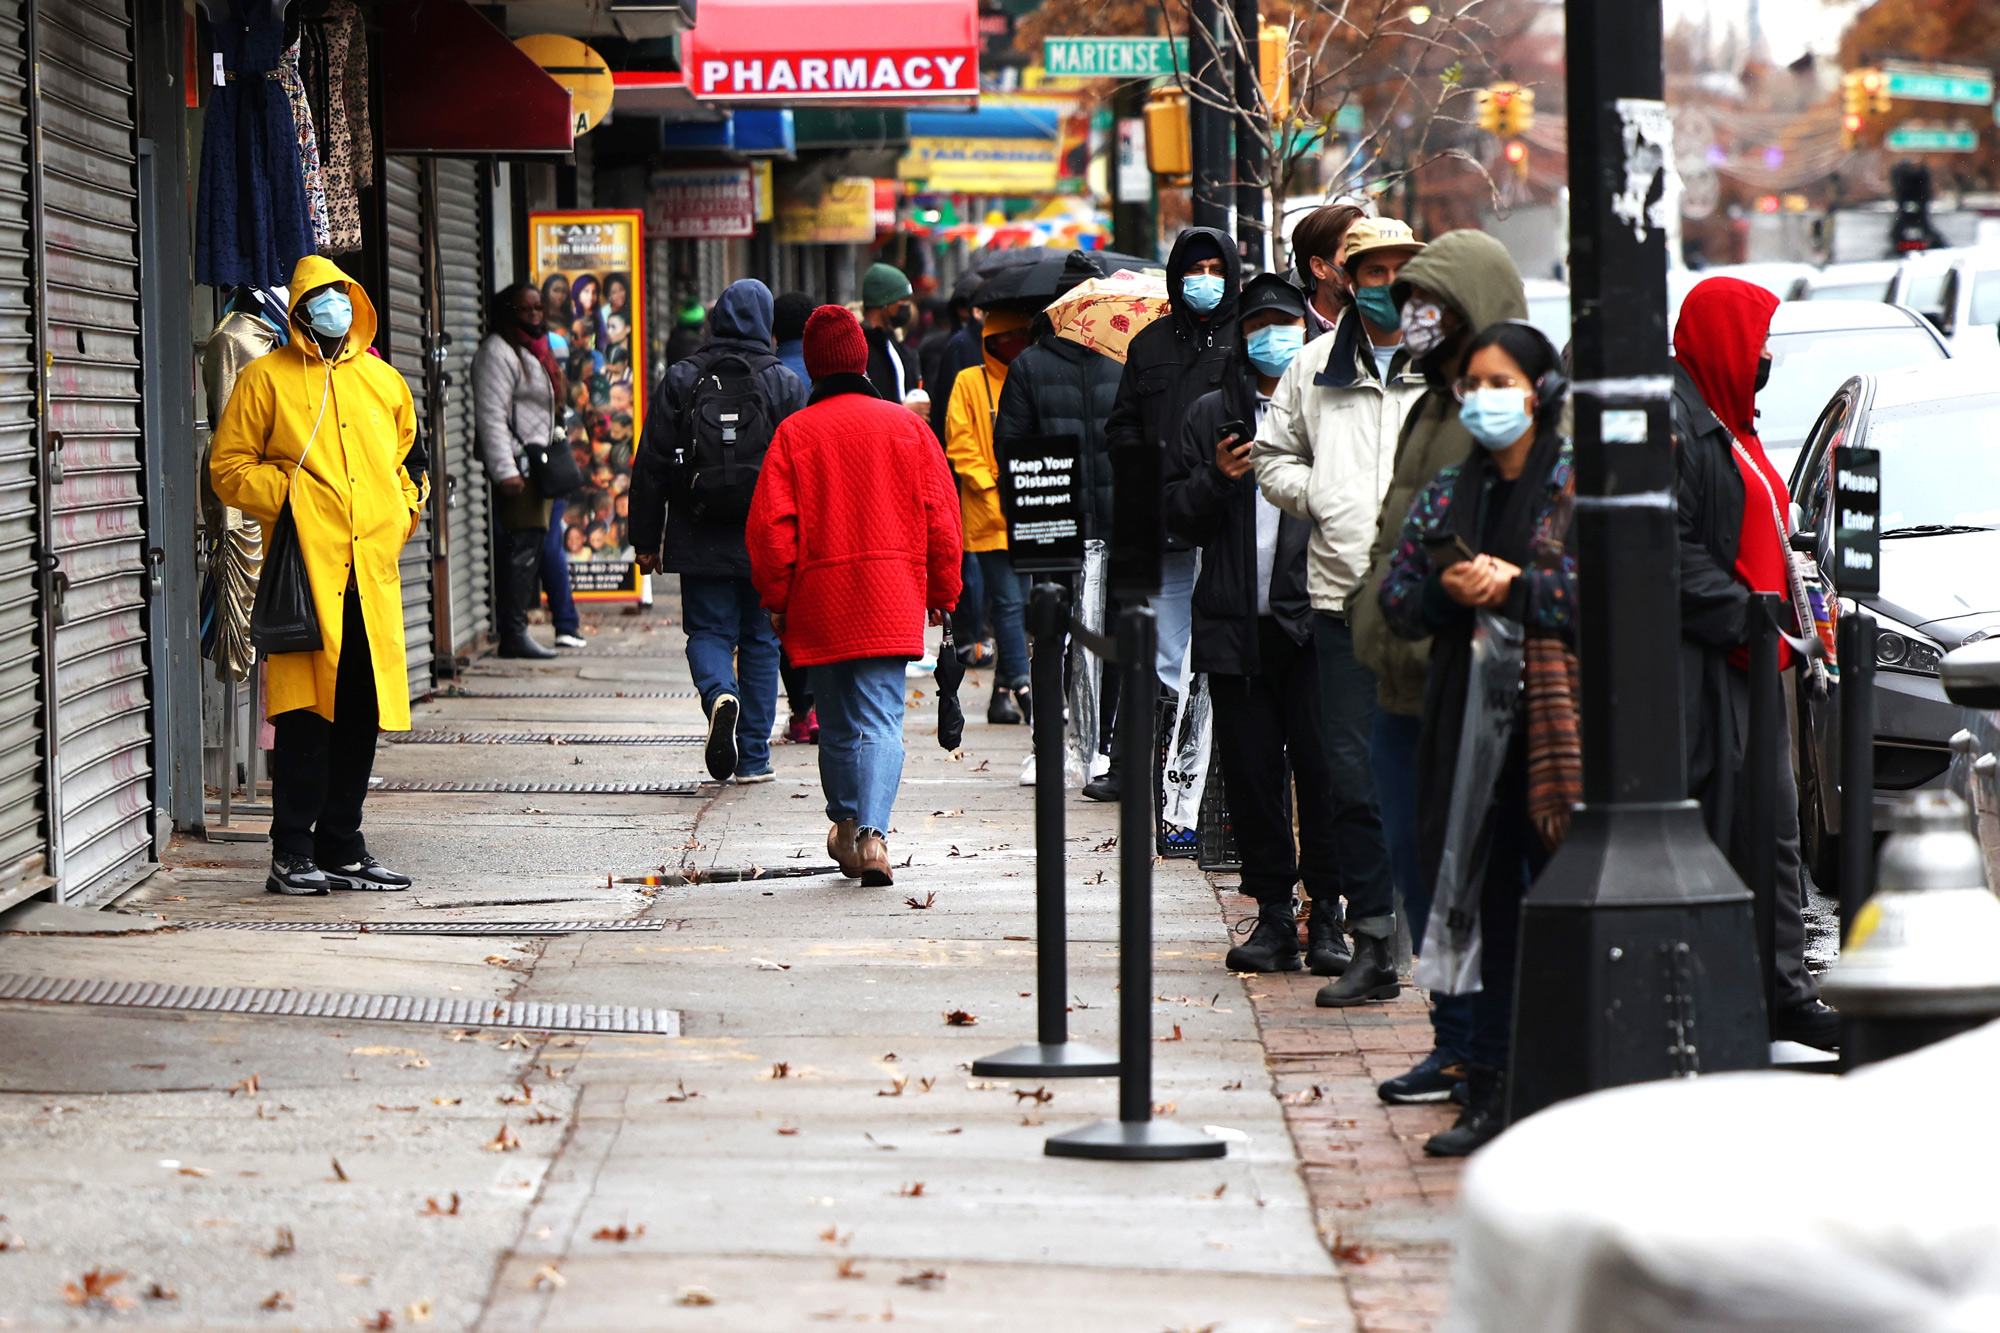 People wait in line to the enter CityMD in the Flatbush neighborhood of Brooklyn on November 23 in New York City.